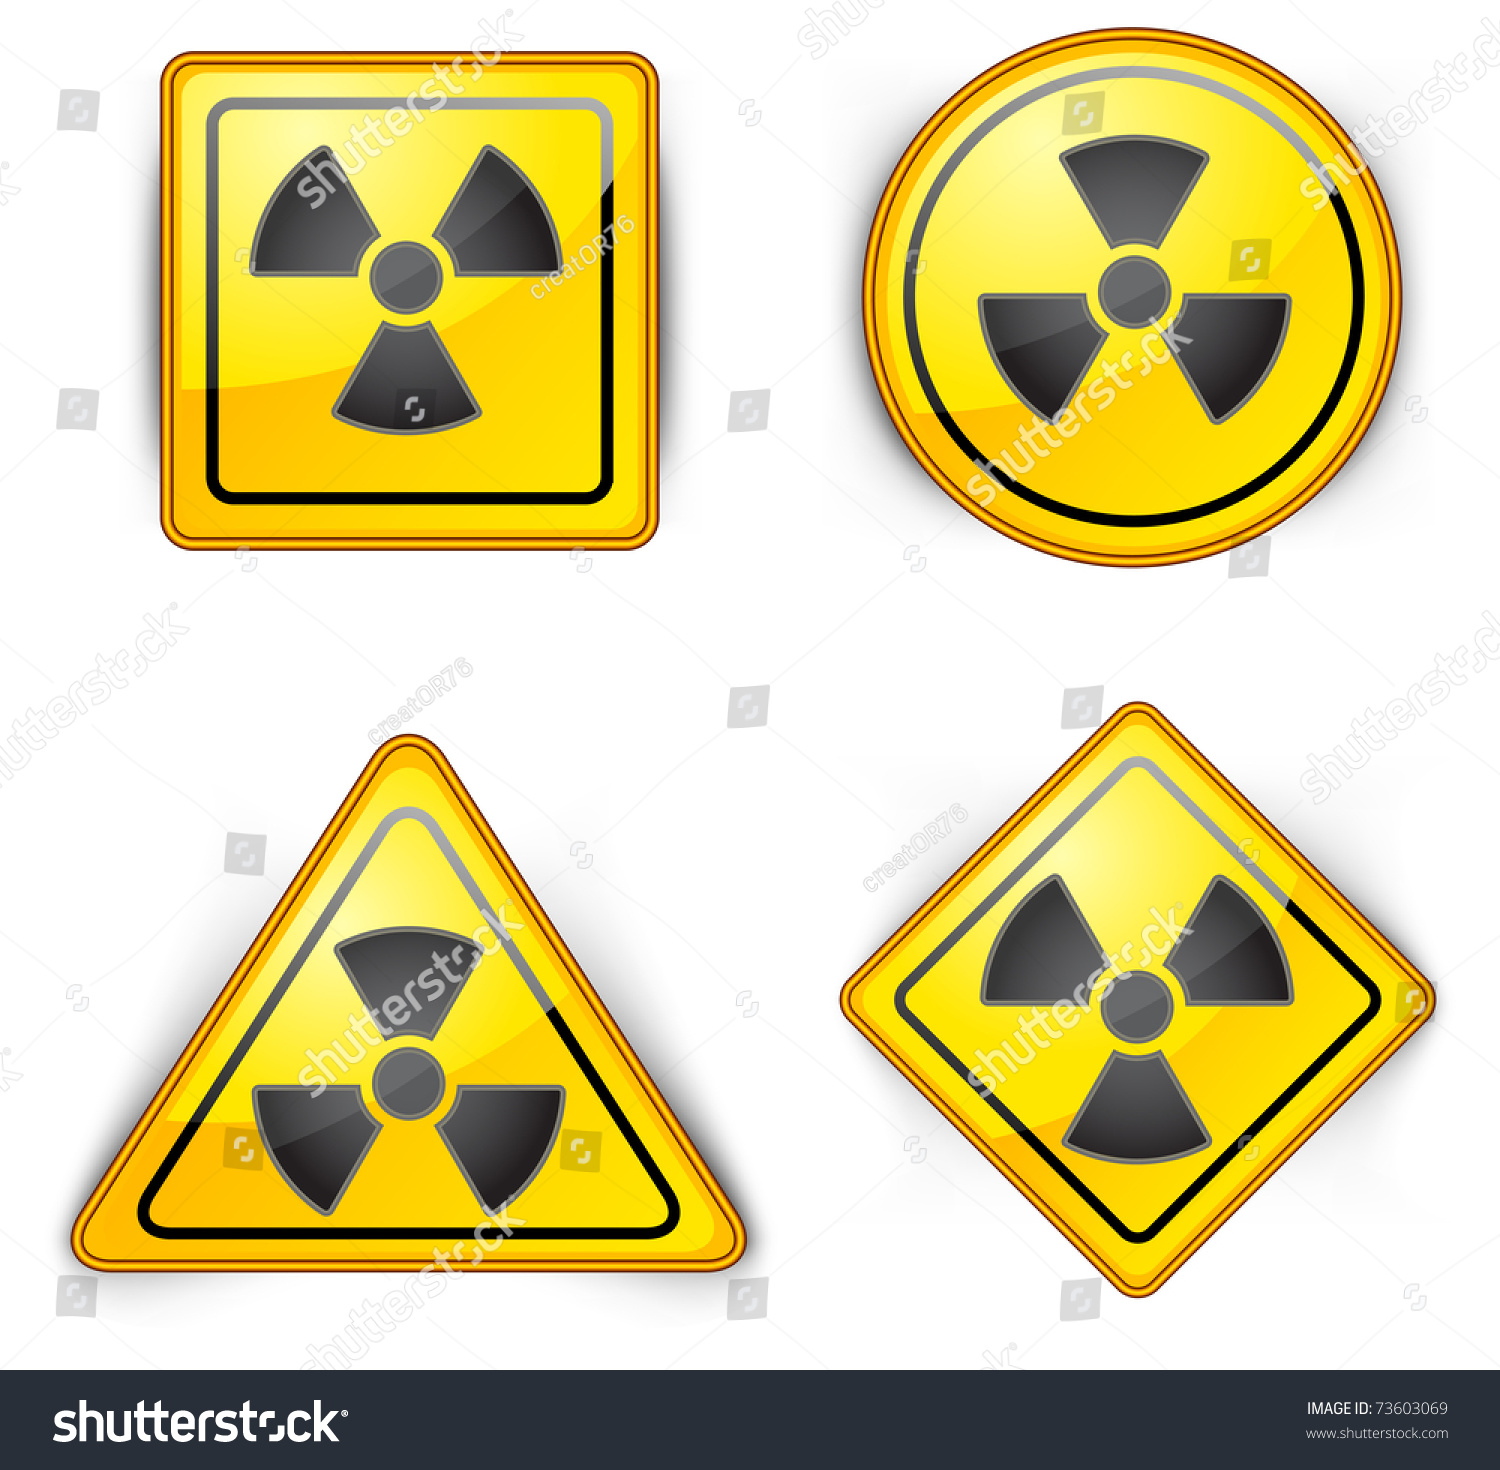 Nuclear Symbol Carefully Dangerously Radioactive Waste Stock Vector